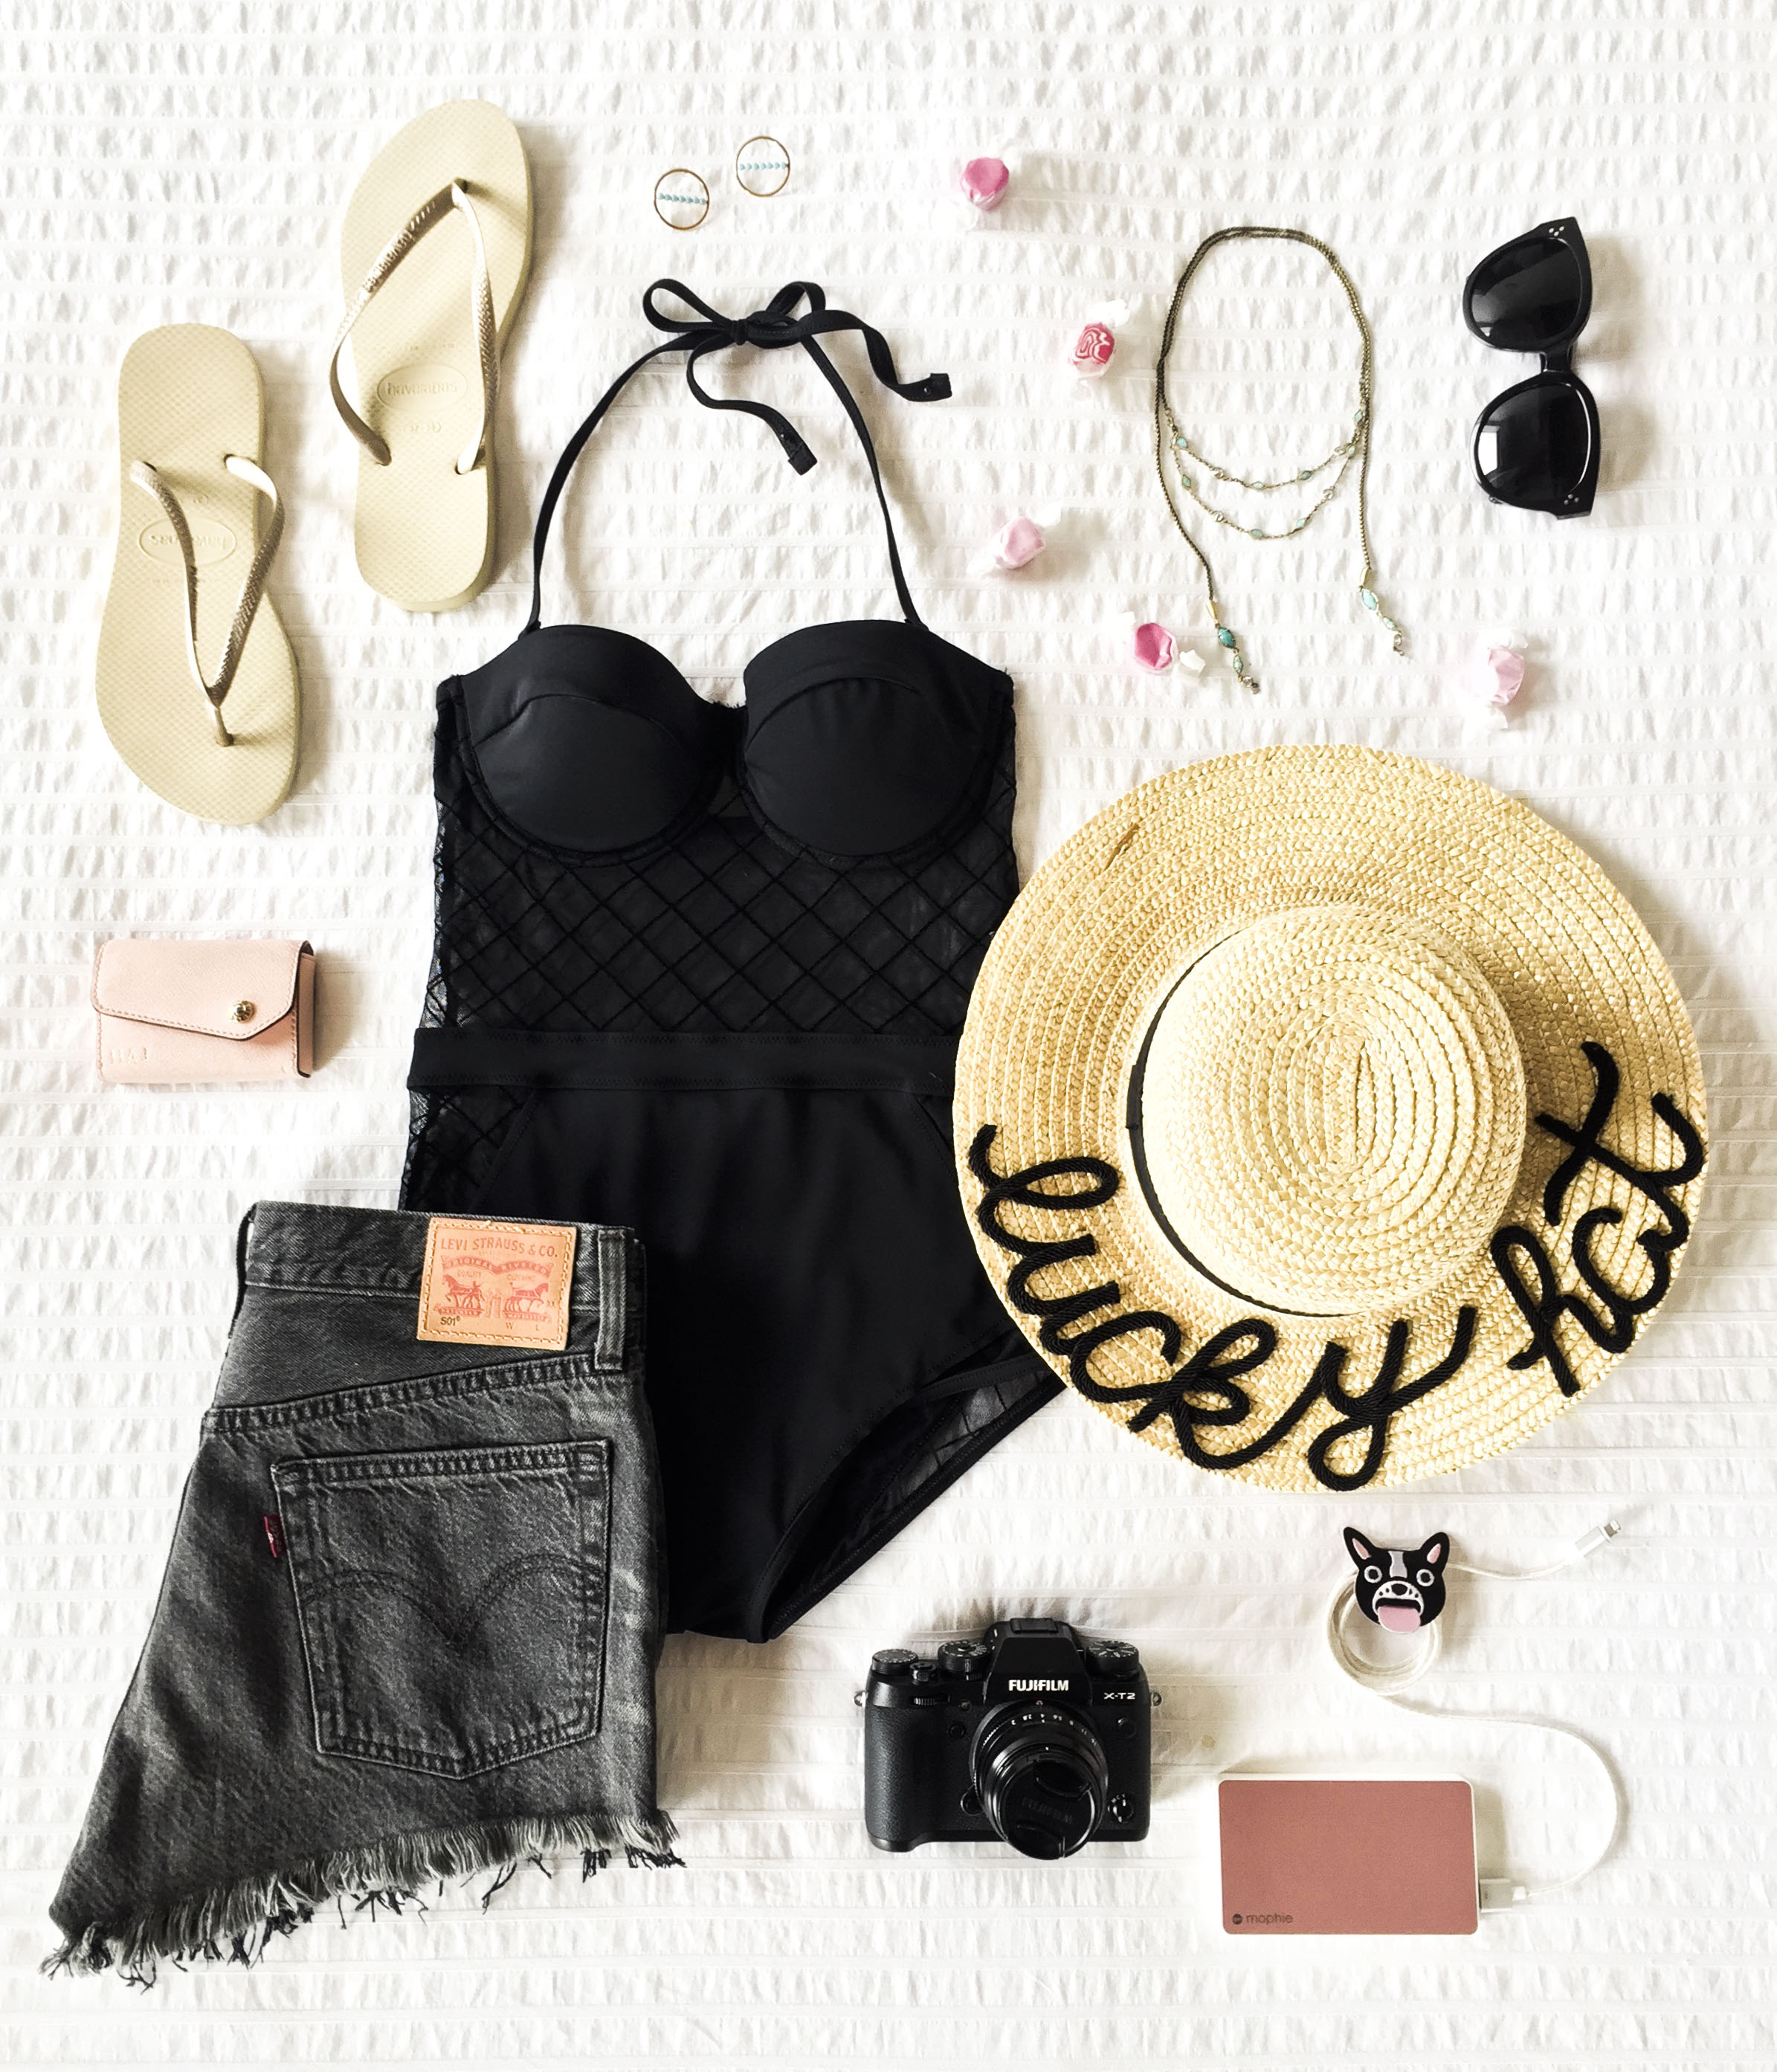 Sexy one piece swimsuit- ASOS diamond mesh cupped swimsuit, DIY Eugenia Kim hat, Levi's 501 shorts, Havaianas flip flops, and Celine Audrey sunglasses. Cute outfit for vacation.